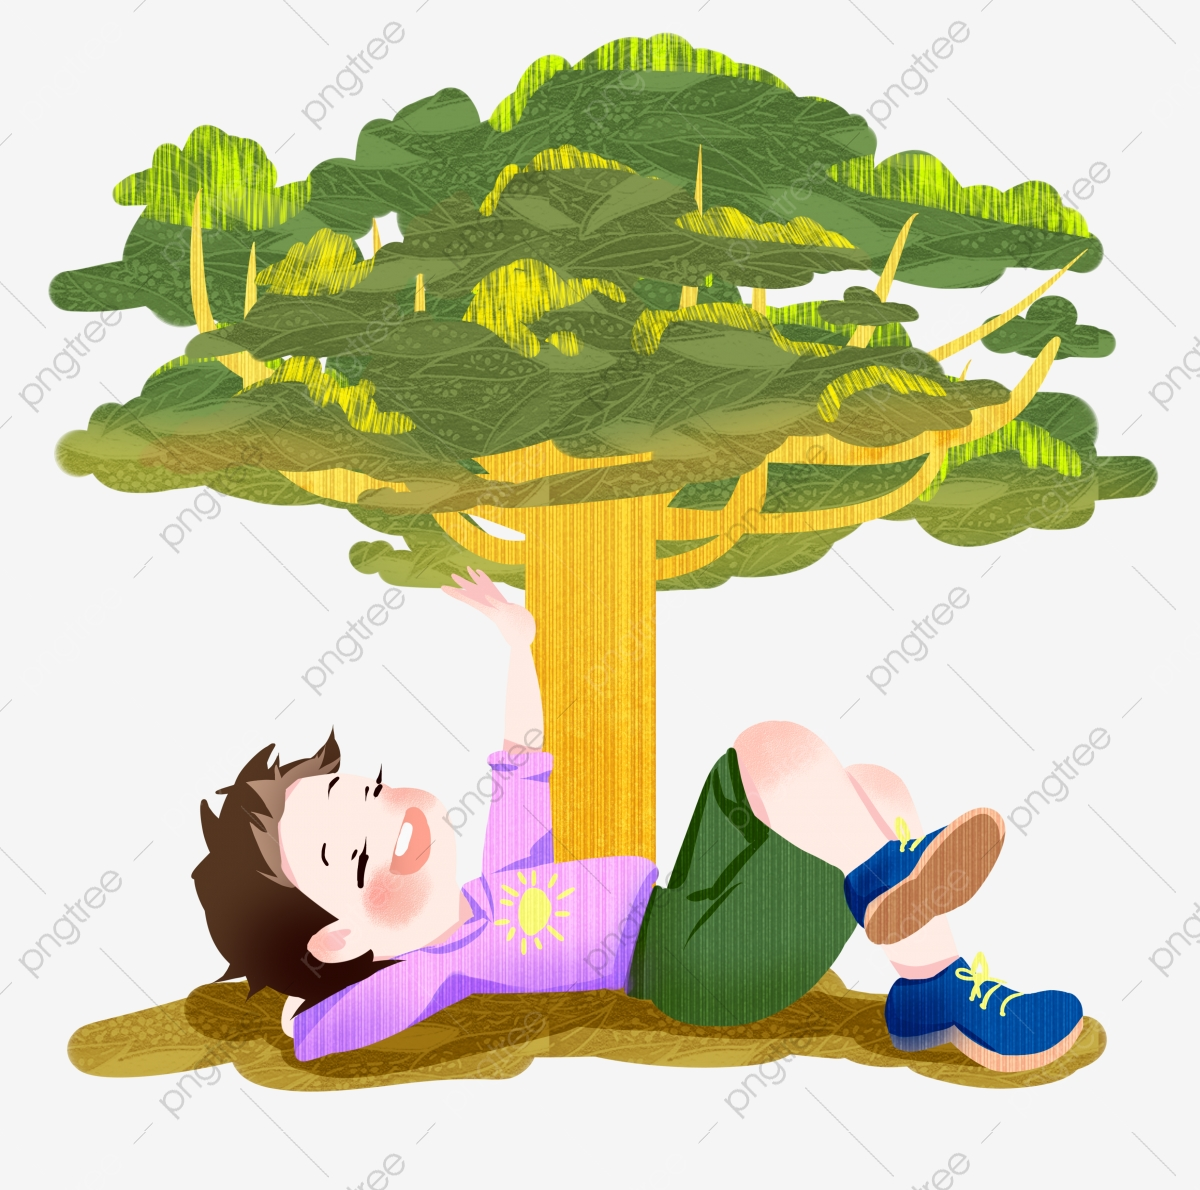 Boy Sleeping Under The Tree Arbor Day Character Illustration Green Trees Plant Decoration Png Transparent Clipart Image And Psd File For Free Download Fruit tree cartoon 8 of 26. https pngtree com freepng boy sleeping under the tree 4578841 html